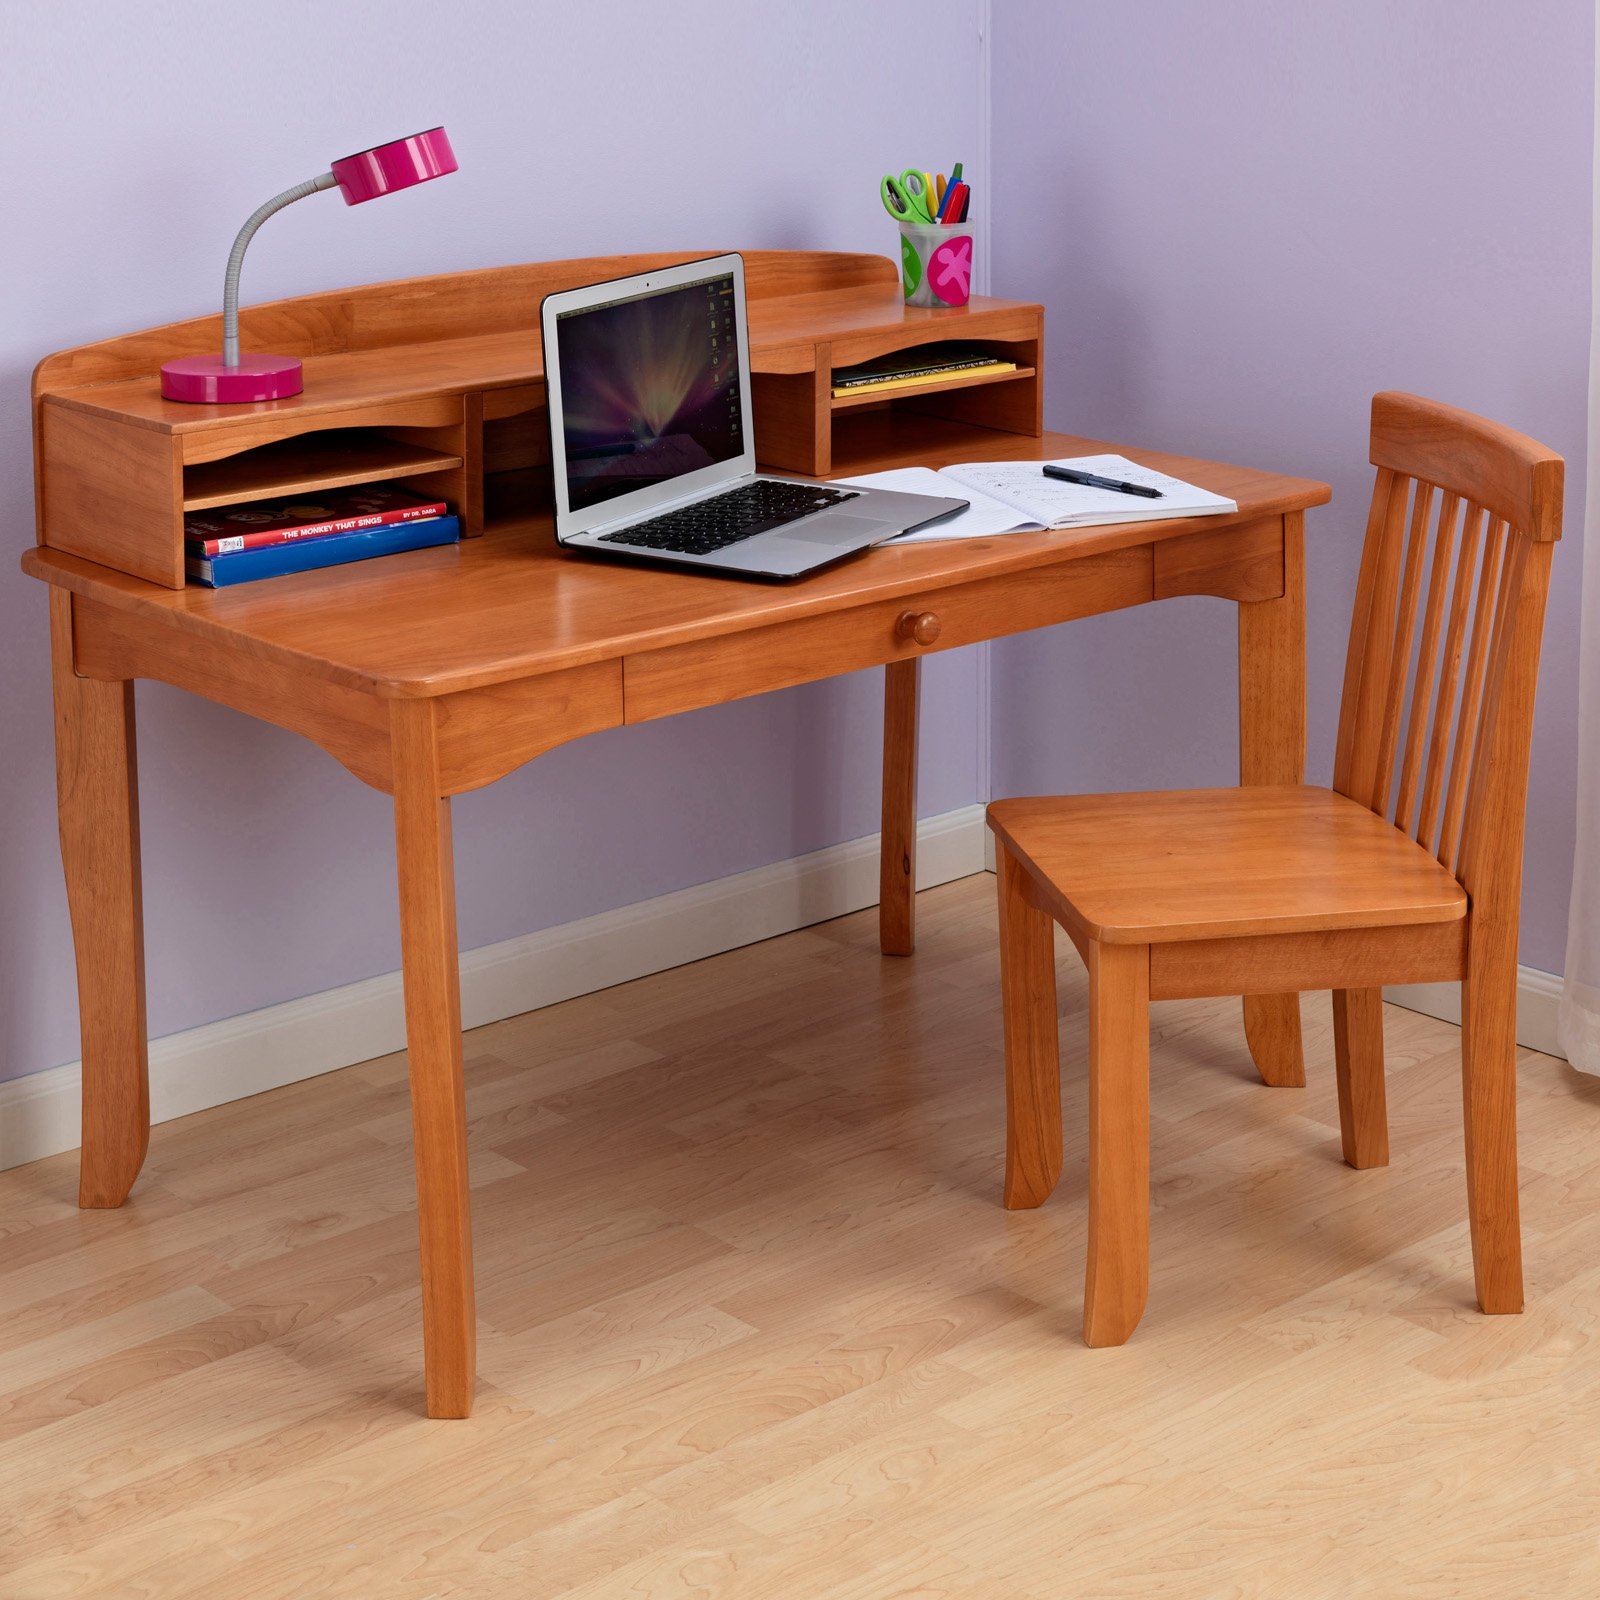 Kid desk with chair design homesfeed for Youth furniture